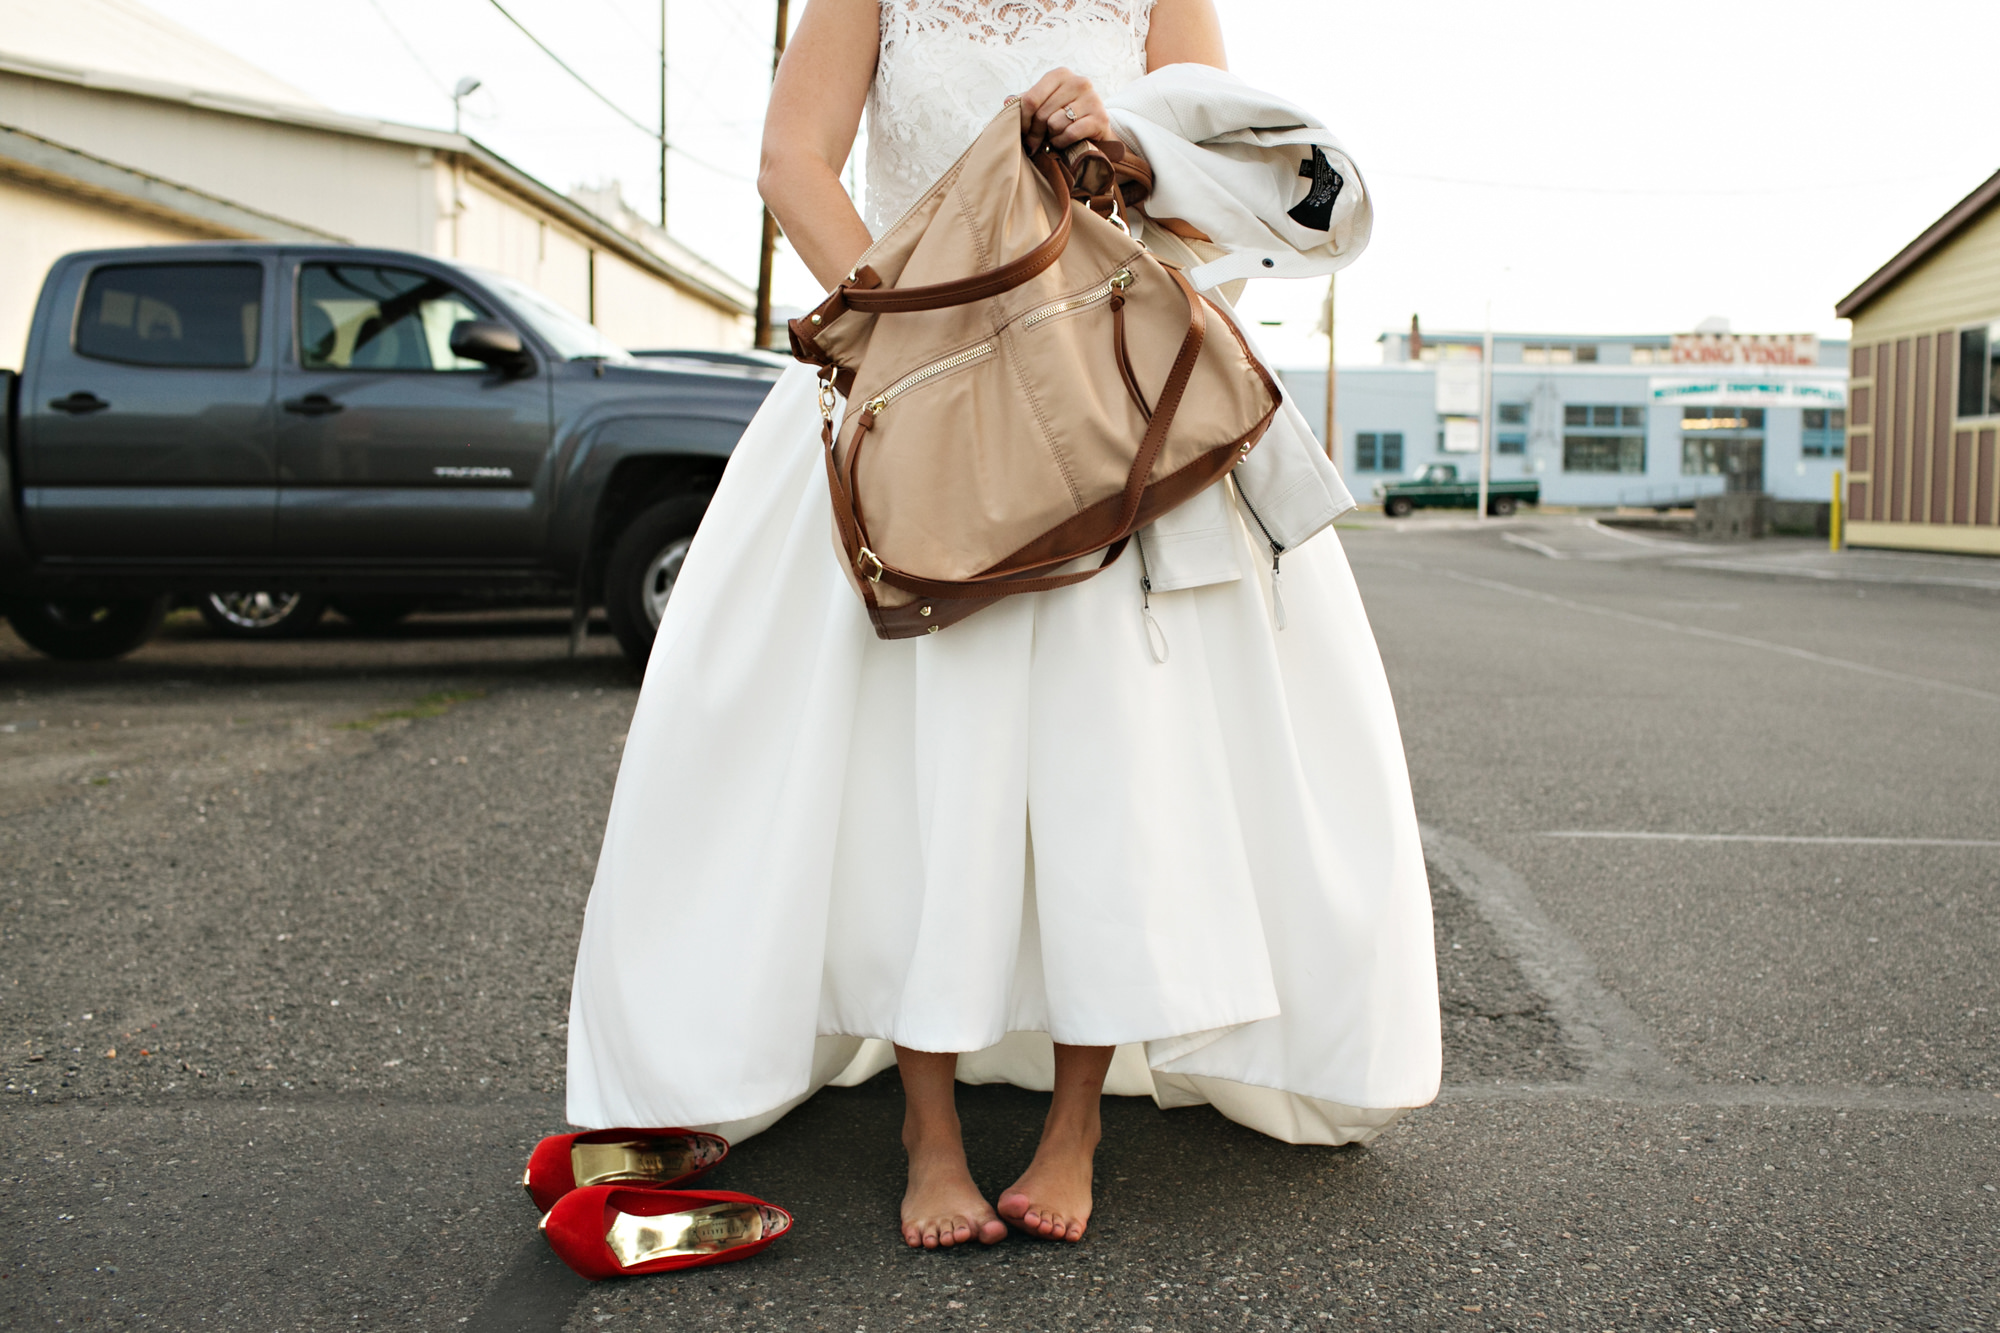 fun-bride-rummages-in-purse-and-take-her-red-shoes-off-worlds-best-wedding-photos-jenny-jimenez-seattle-wedding-photographers